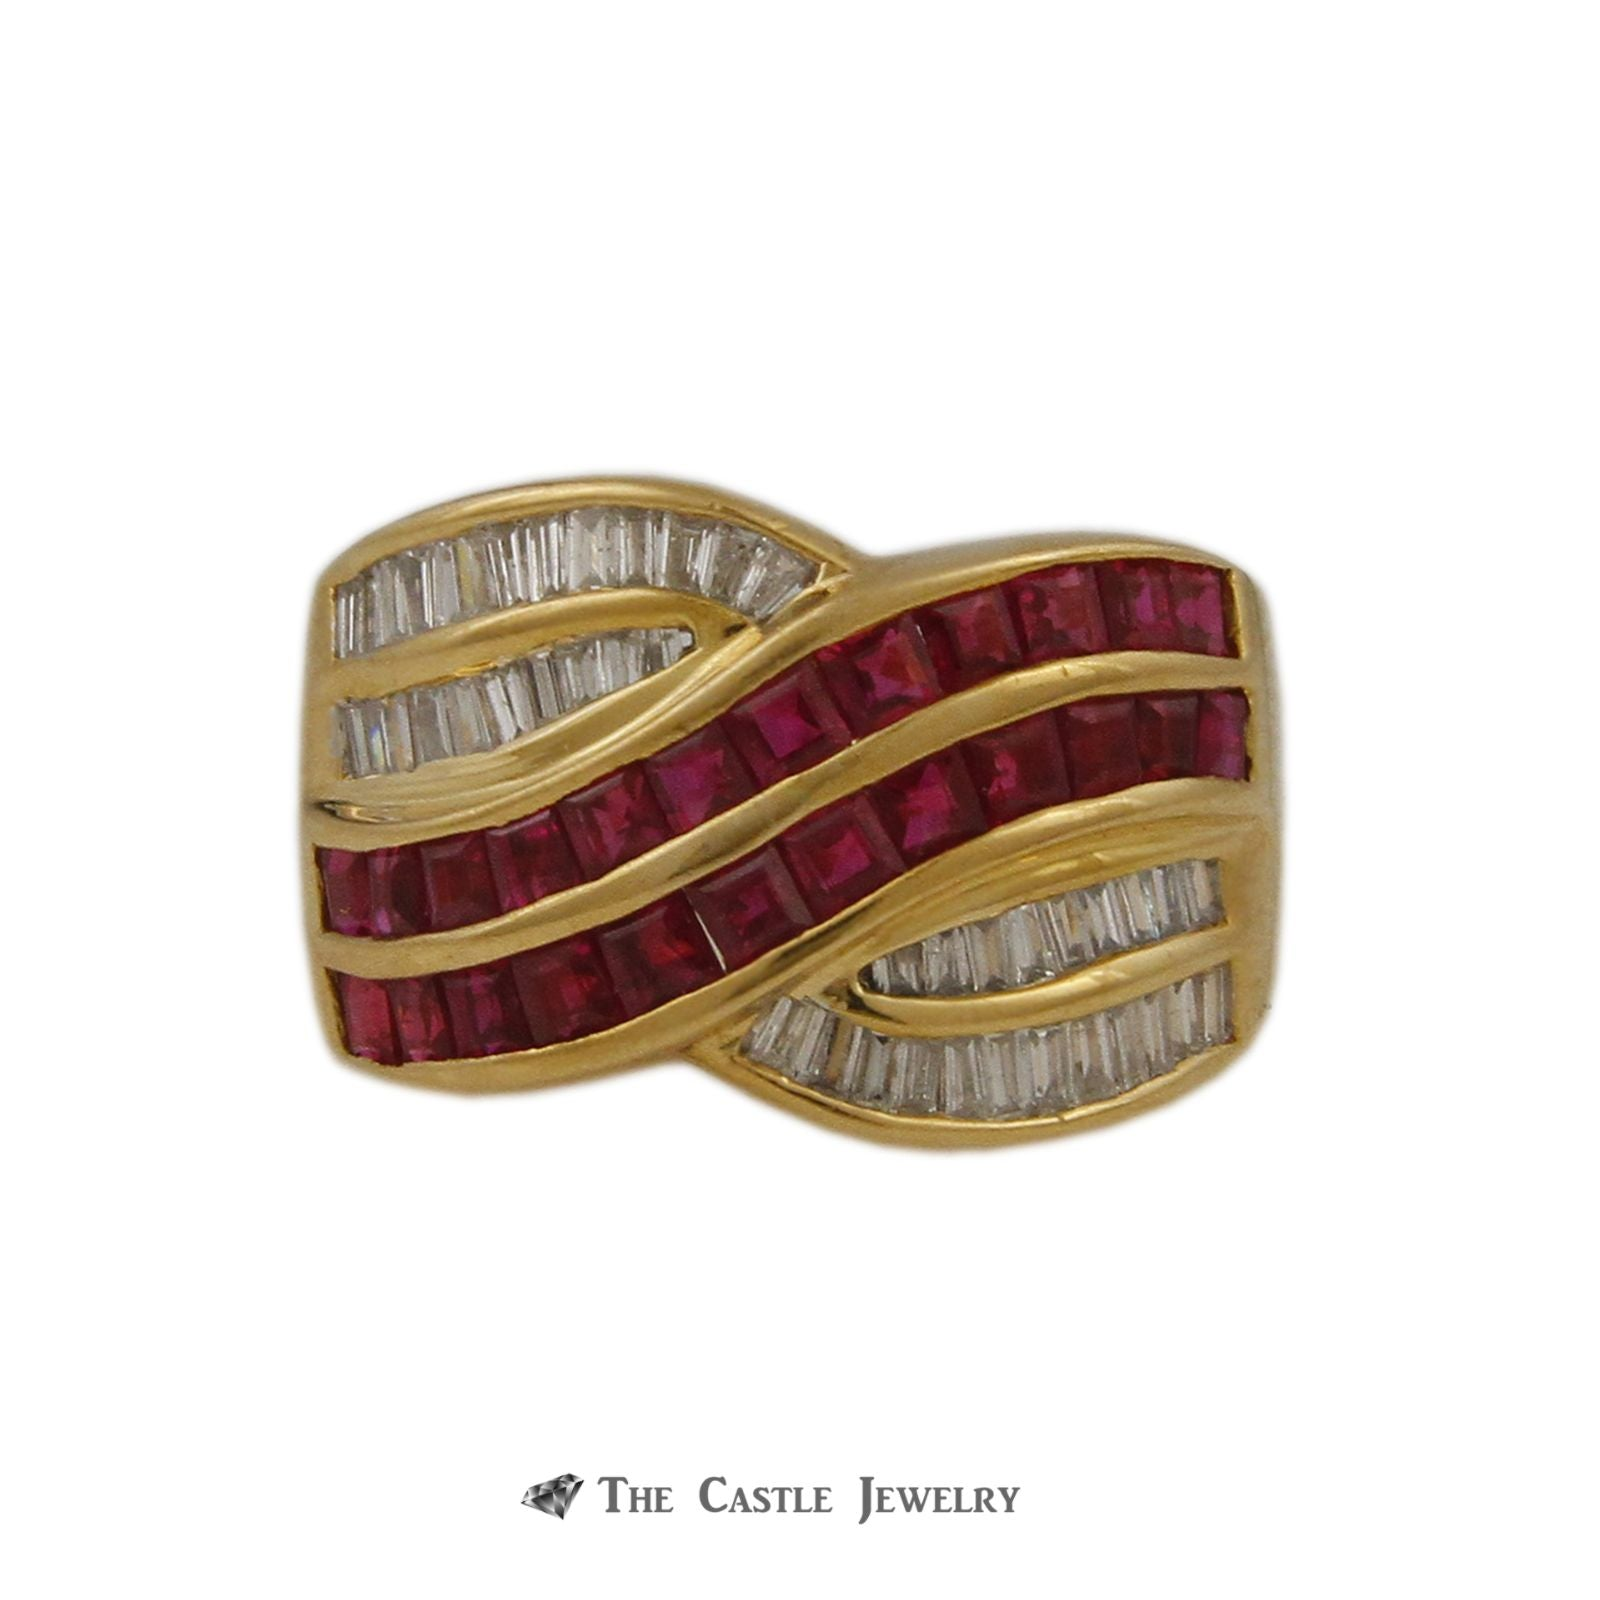 Le Vian Square 1.75cttw Ruby & .50cttw Baguette Diamond Cross Over Style Ring in 18k Yellow Gold